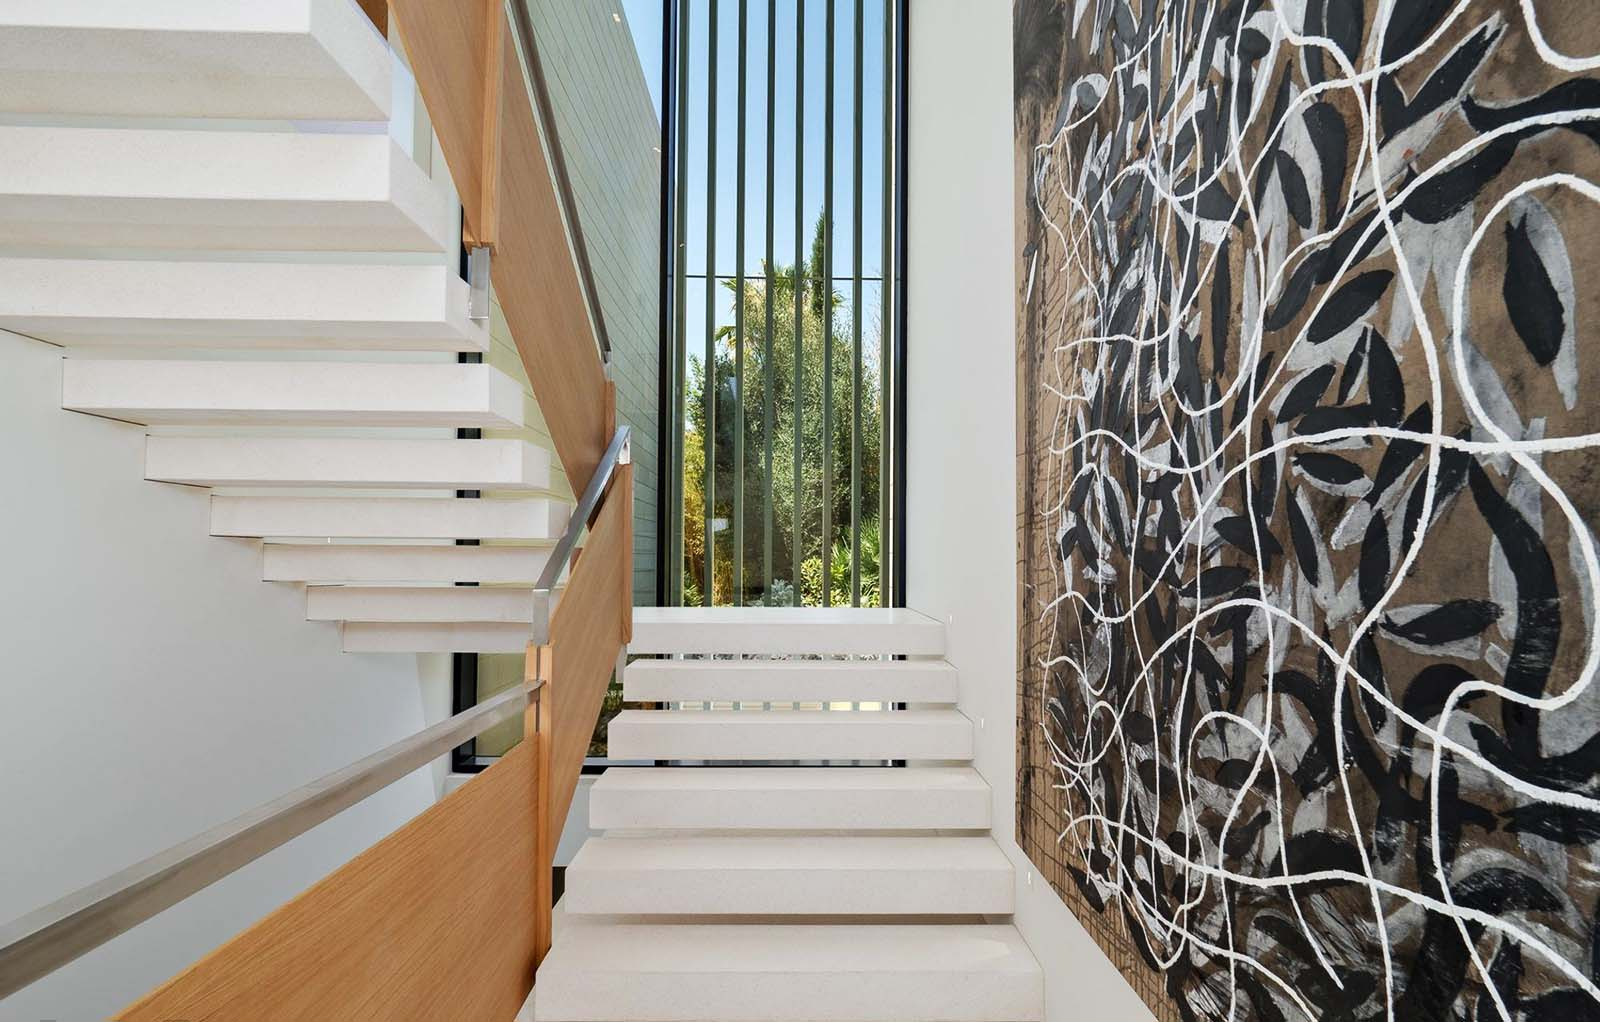 Modern floating staircase with white steps and wood rails. stepsfloating from the side walls.